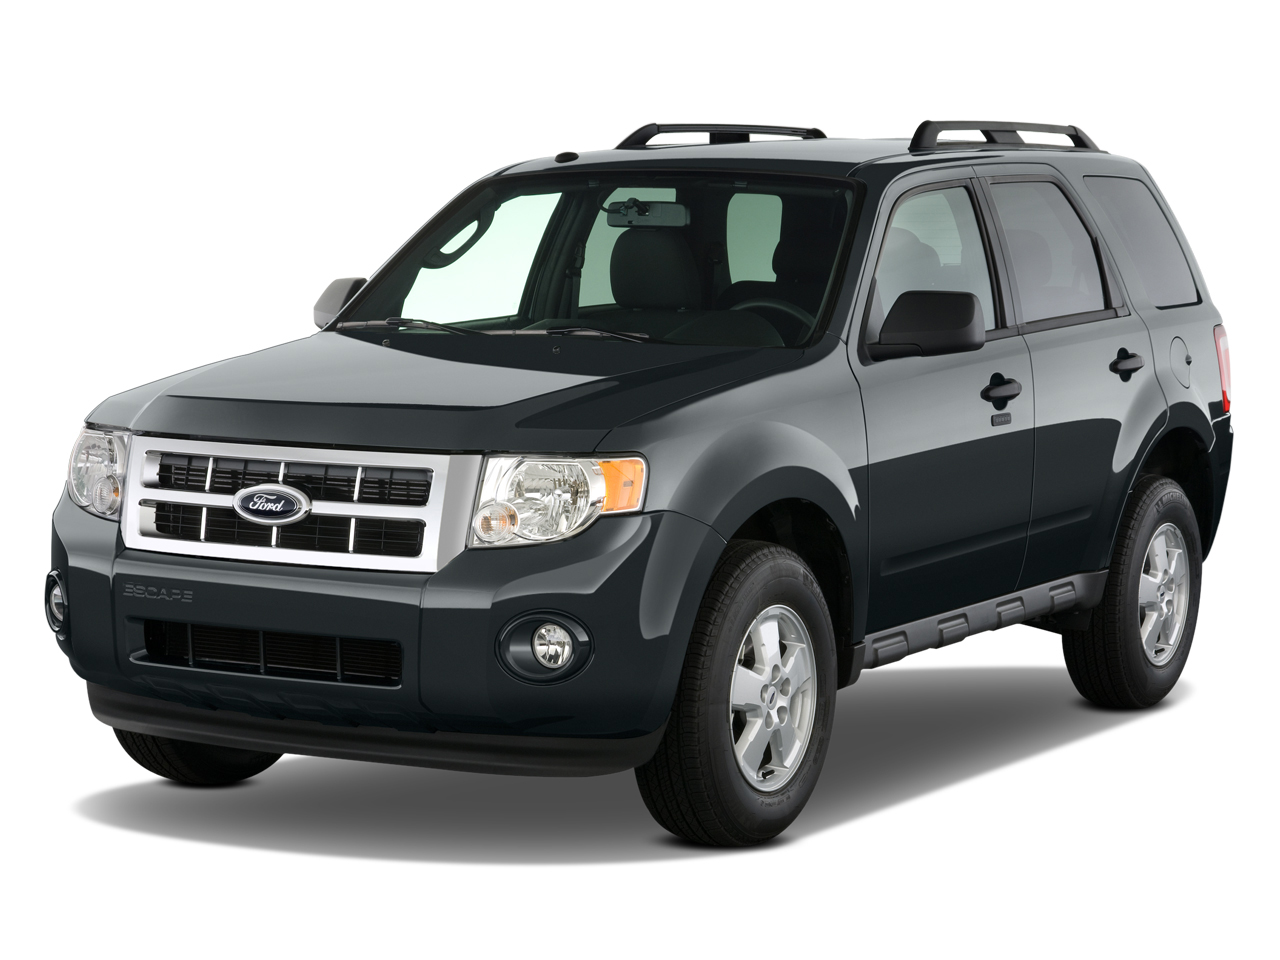 Ford Escape photo 04